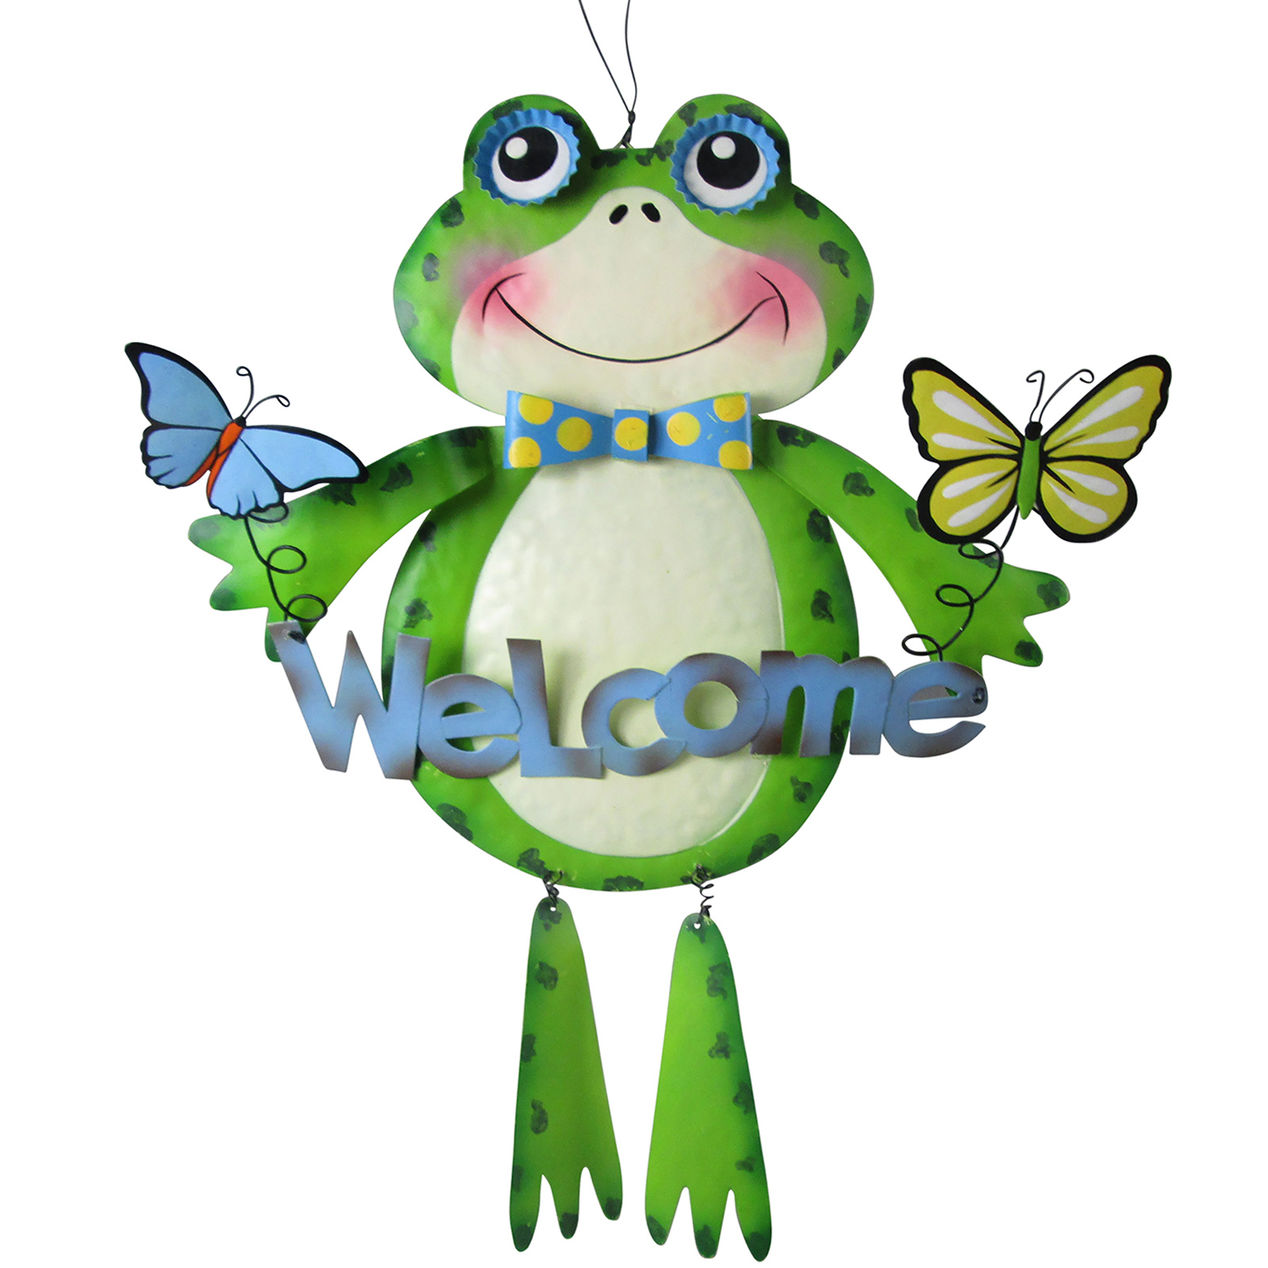 frog welcome metal sign home drum accent tables fitted round table covers vinyl wagon wheel furniture designer placemats and napkins large mirror water filter teak patio steel